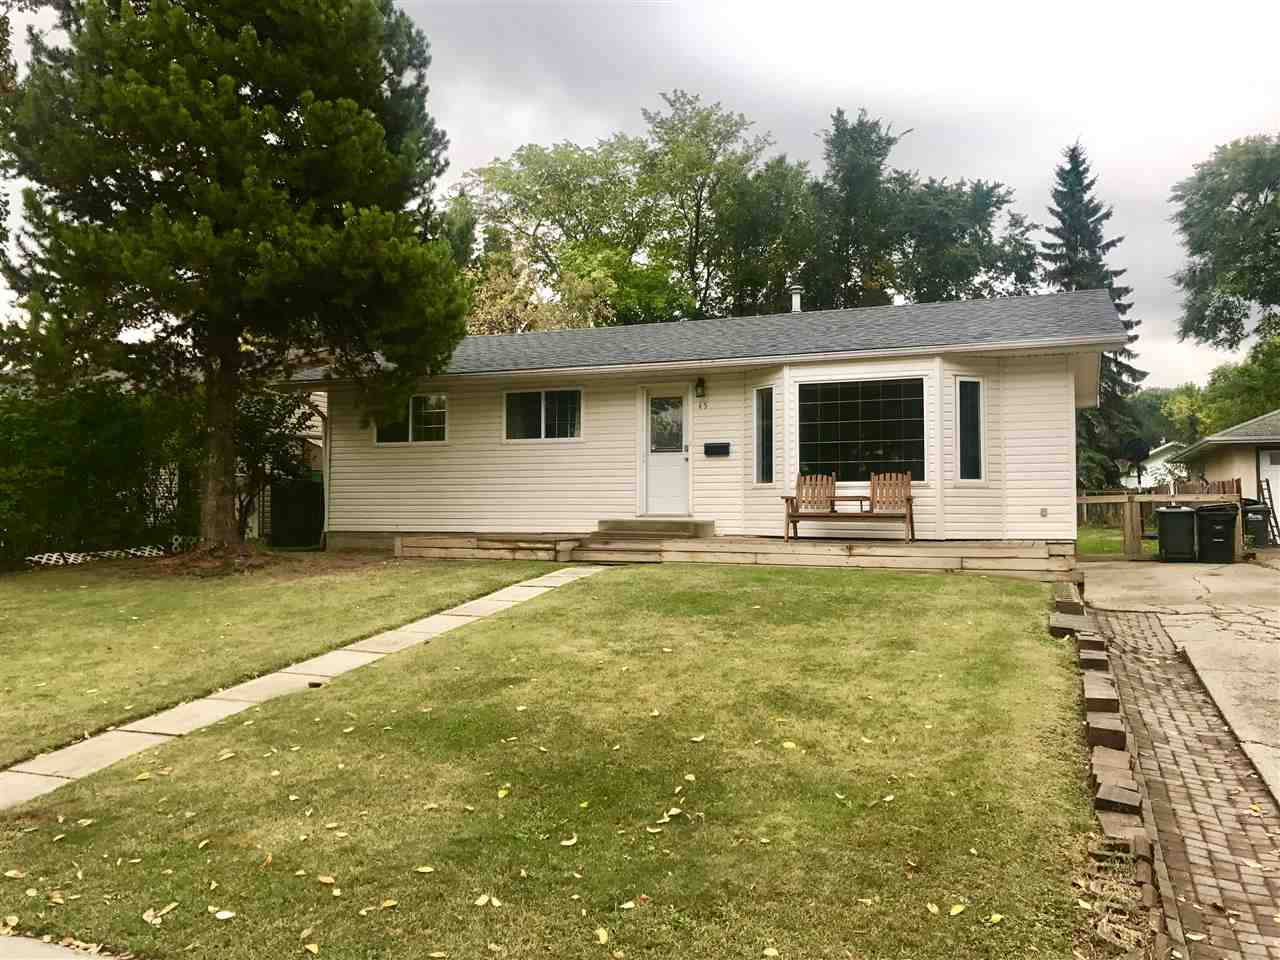 Updated quaint bungalow located in the heart of Sherwood Park, within walking distance of elementary school, shopping and public transport. Recently upgraded including shingles (2017),hot water tank, furnace, flooring, main floor windows, siding, deck, etc. Step into the foyer and view the large bright from living room with bay window and then carry onto the dining area with the adjoining kitchen that has updated cabinetry and ceramic flooring.Down the hallway you will find the spacious master bedroom and 2 other good size bedrooms and the full updated bathroom.The basement is fully finished and features a HUGE rec room area, 2 more potential bedrooms, 3 pc bathroom with corner shower, utility laundry area and storage room. Massive southern exposure yard that is landscaped, has a huge deck, very big play structure, 2 sheds, and tons of room to build your dream garage!